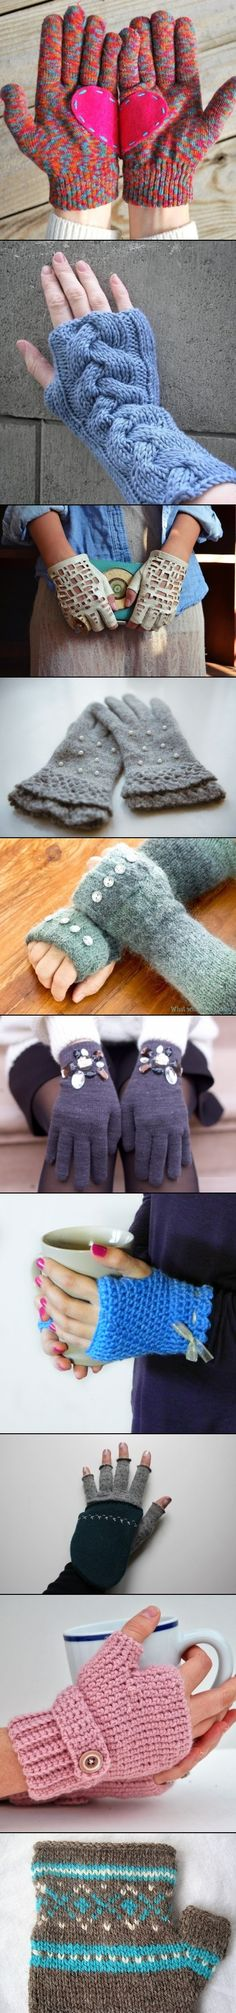 Interesting ideas for diy gloves creative ideas варежки, перчатки, вязание. Look Fashion, Diy Fashion, Womens Fashion, Diy Clothes Videos, Diy Pins, Looks Cool, Handmade Clothes, Handicraft, Knit Crochet